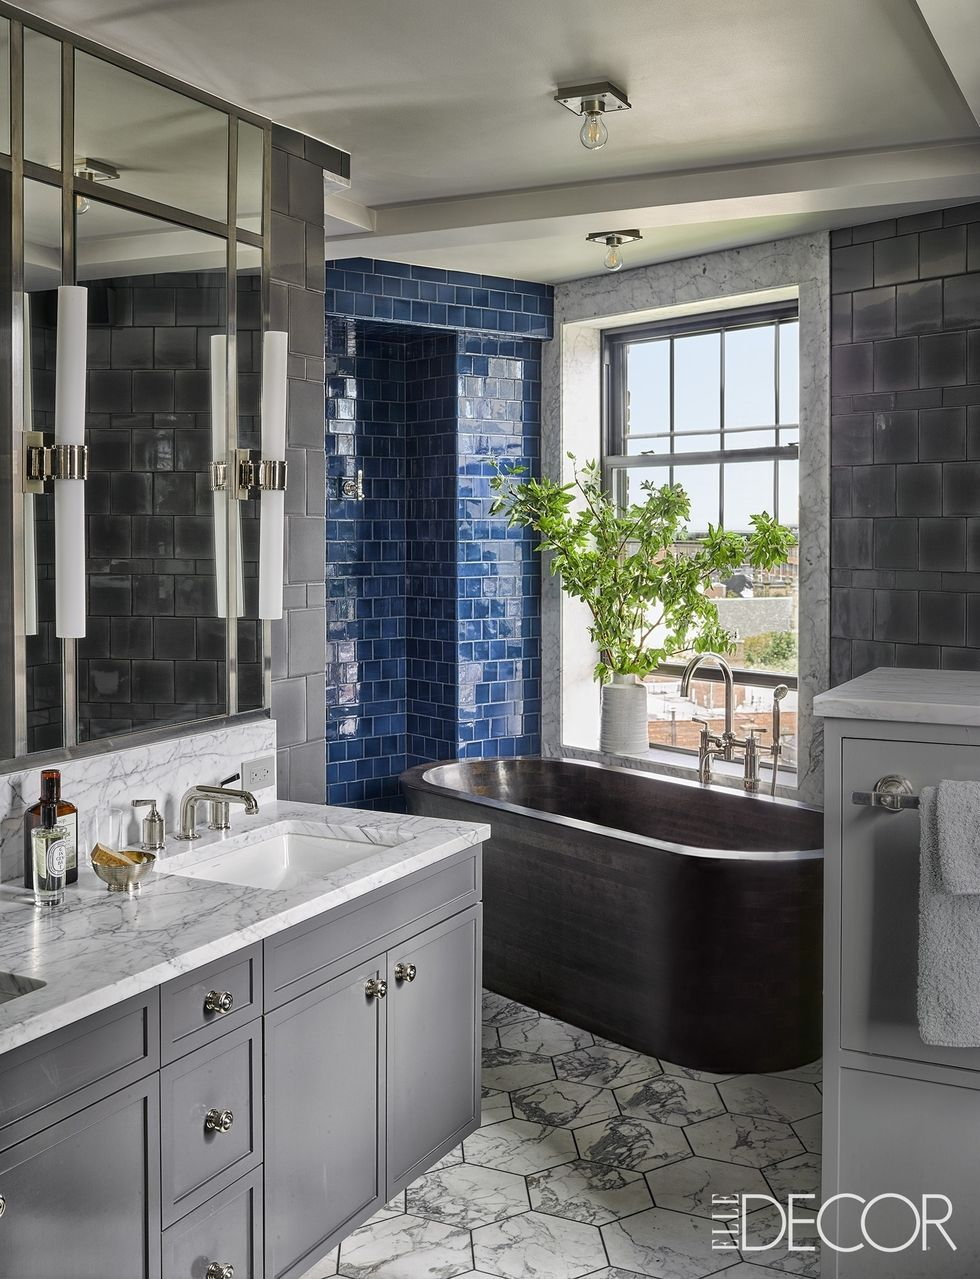 Incroyable When It Comes To Bathroom Design, Weu0027ve Got Inspiration In Droves. From  Petite Powder Rooms To Palatial Master Baths, Weu0027ve Seen It All.